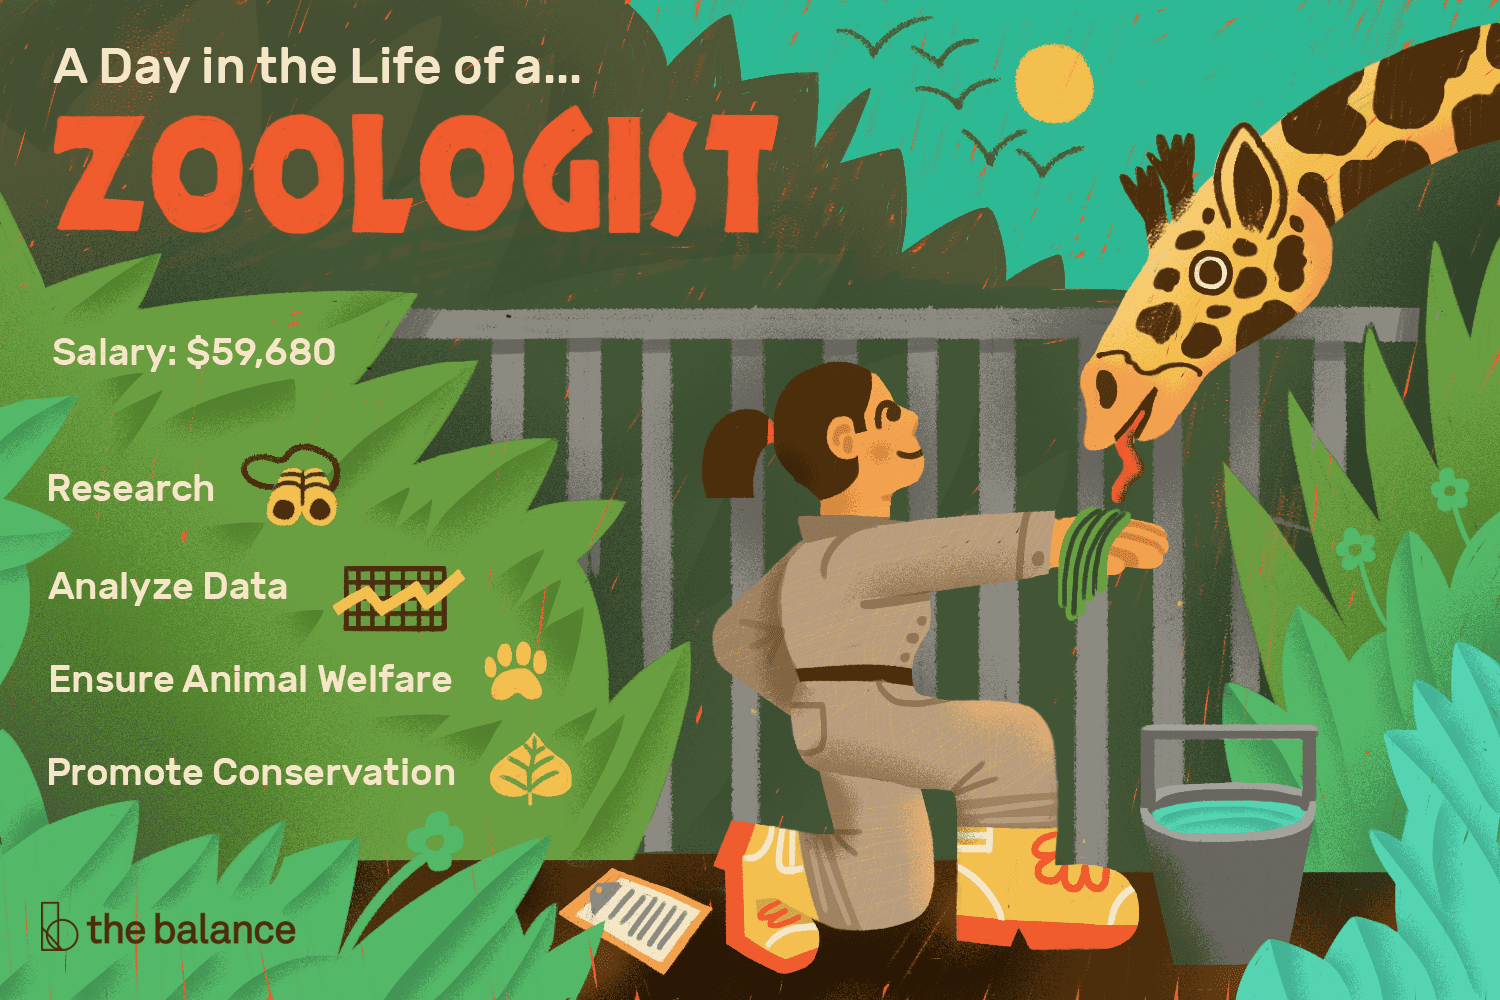 A Zoologist Is A Biologist Who Studies A Variety Of Animal Species Get A Job Description Salary Information And M Zoologist Career Work With Animals Zoology